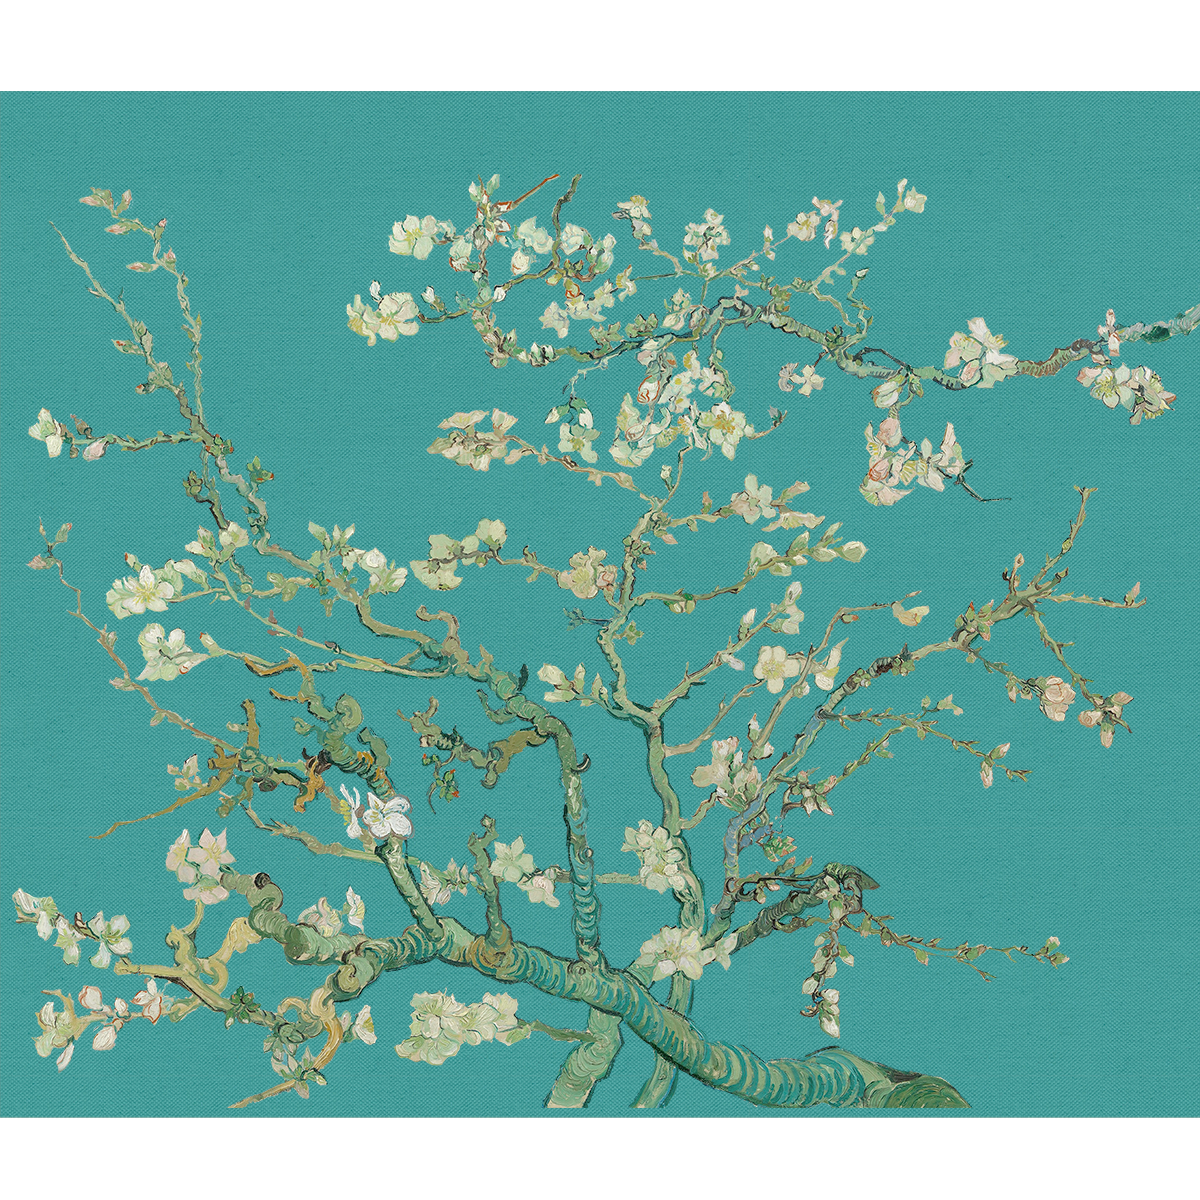 A branch of flowers in front of an aqua background inspired by van Gogh's Almond Blossoms